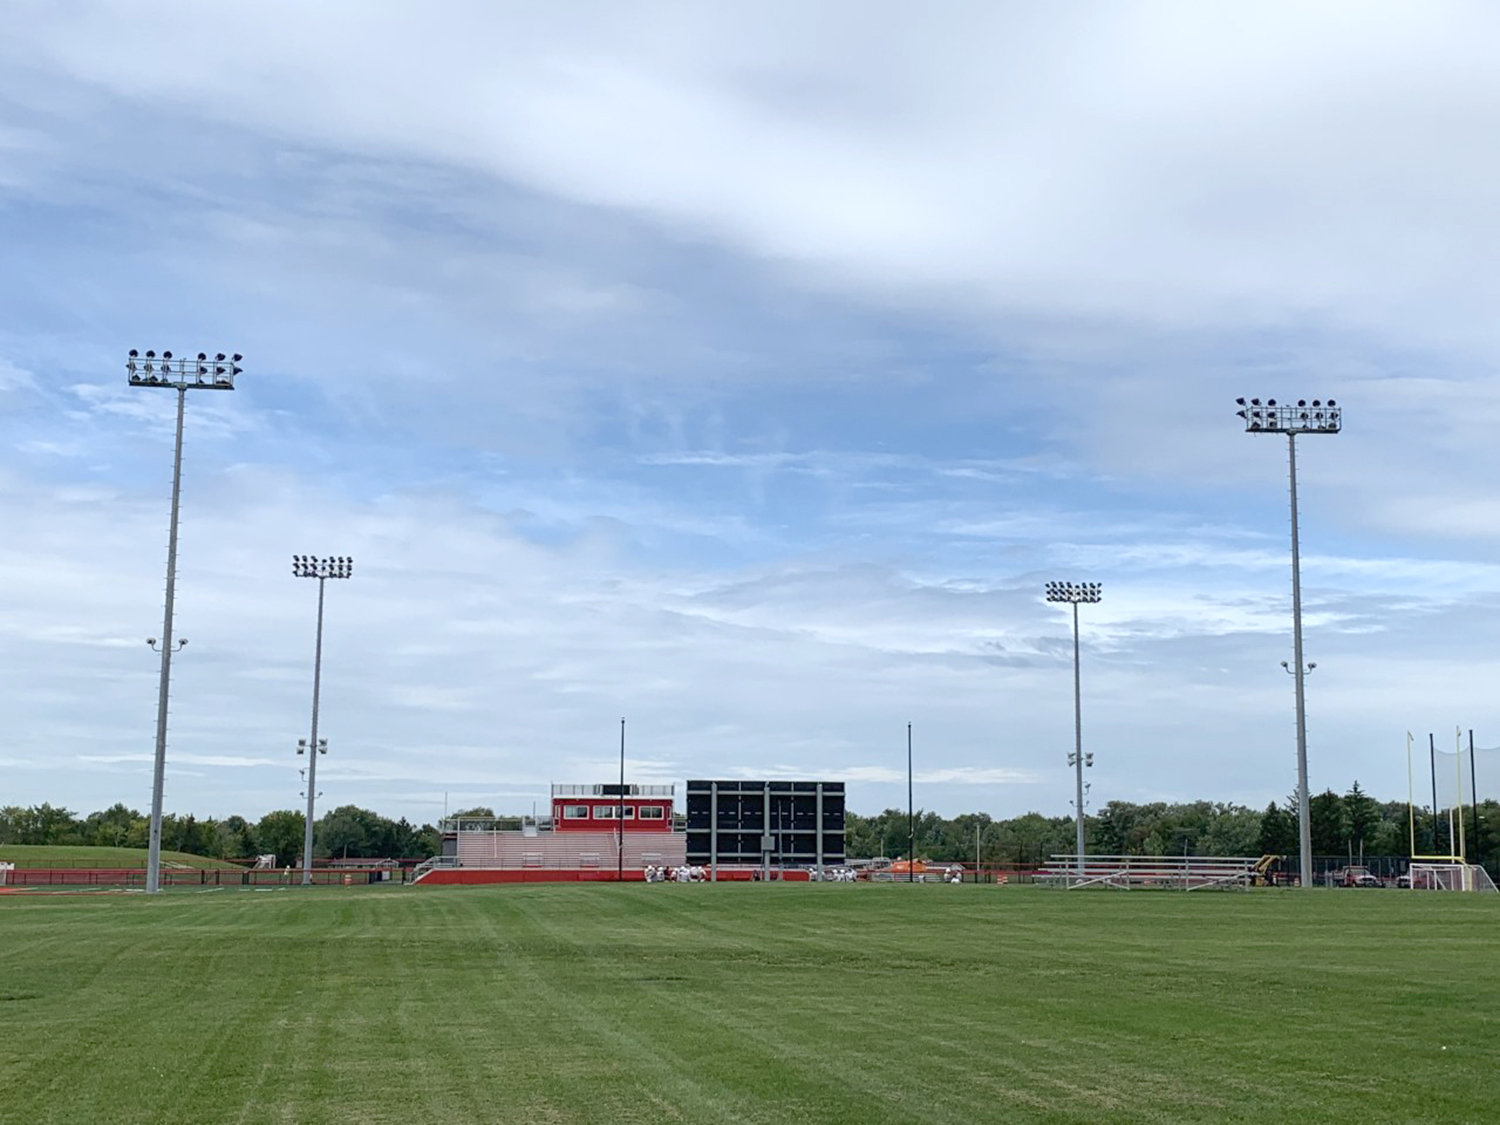 LIGHTING UP AGAIN — The lighting system at the Vernon-Verona-Sherrill school district's Sheveron Stadium is back in operation, as light poles that were brought down last spring due to structural concerns have been reinstalled and have undergone final testing.